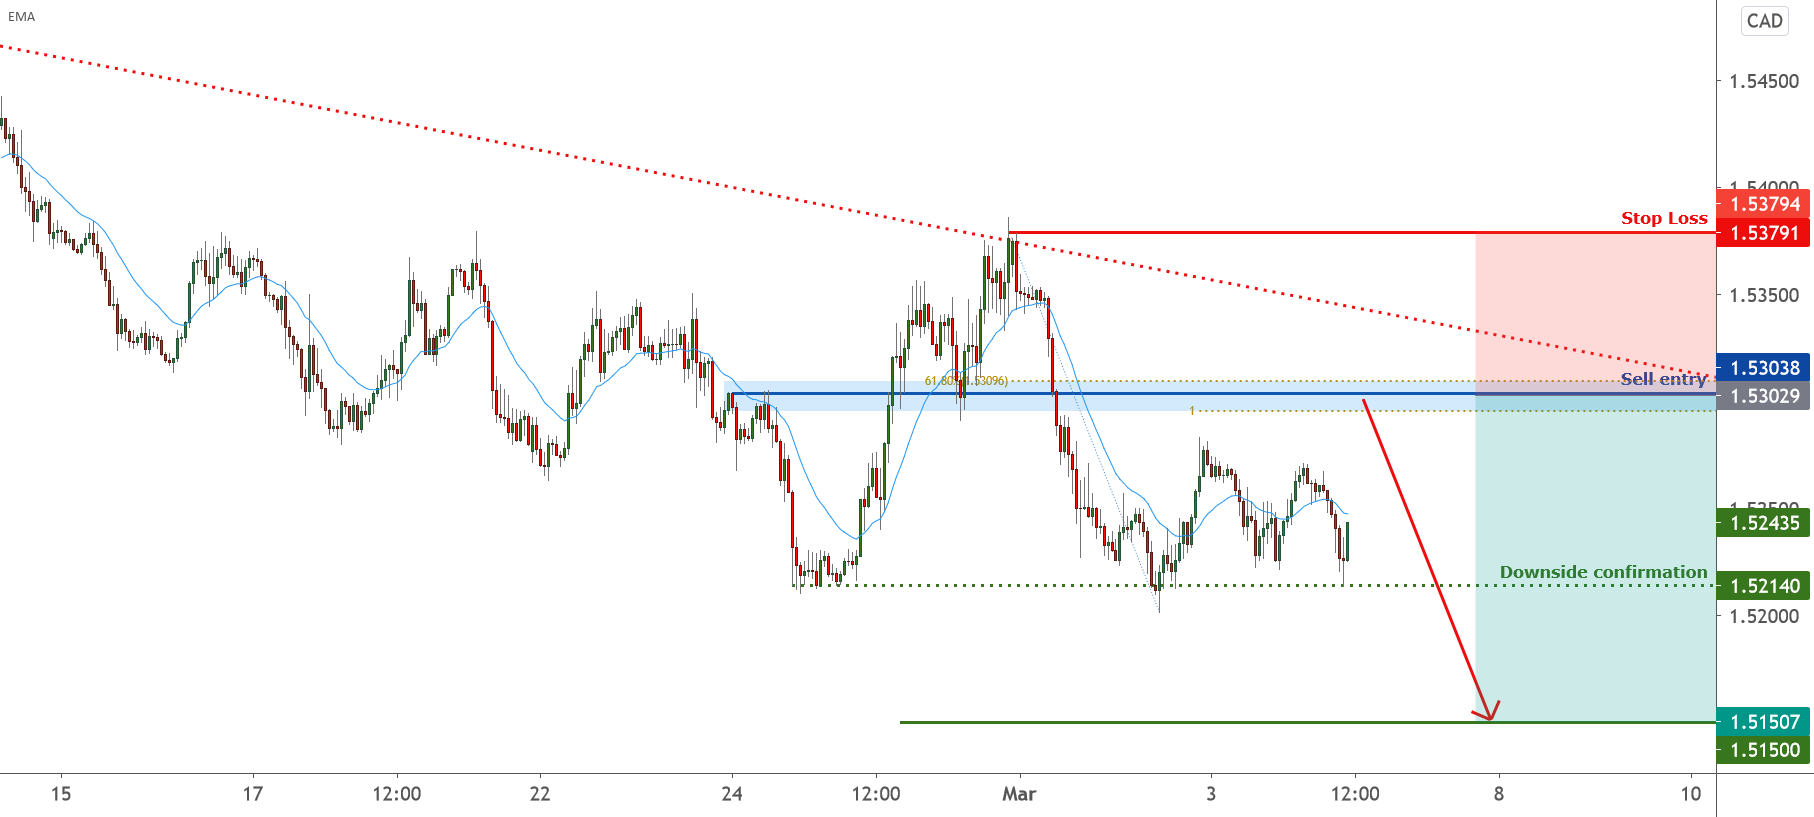 EURCAD is approaching resistance, potential reversal |4 Mar 2021 for FX:EURCAD by FXCM